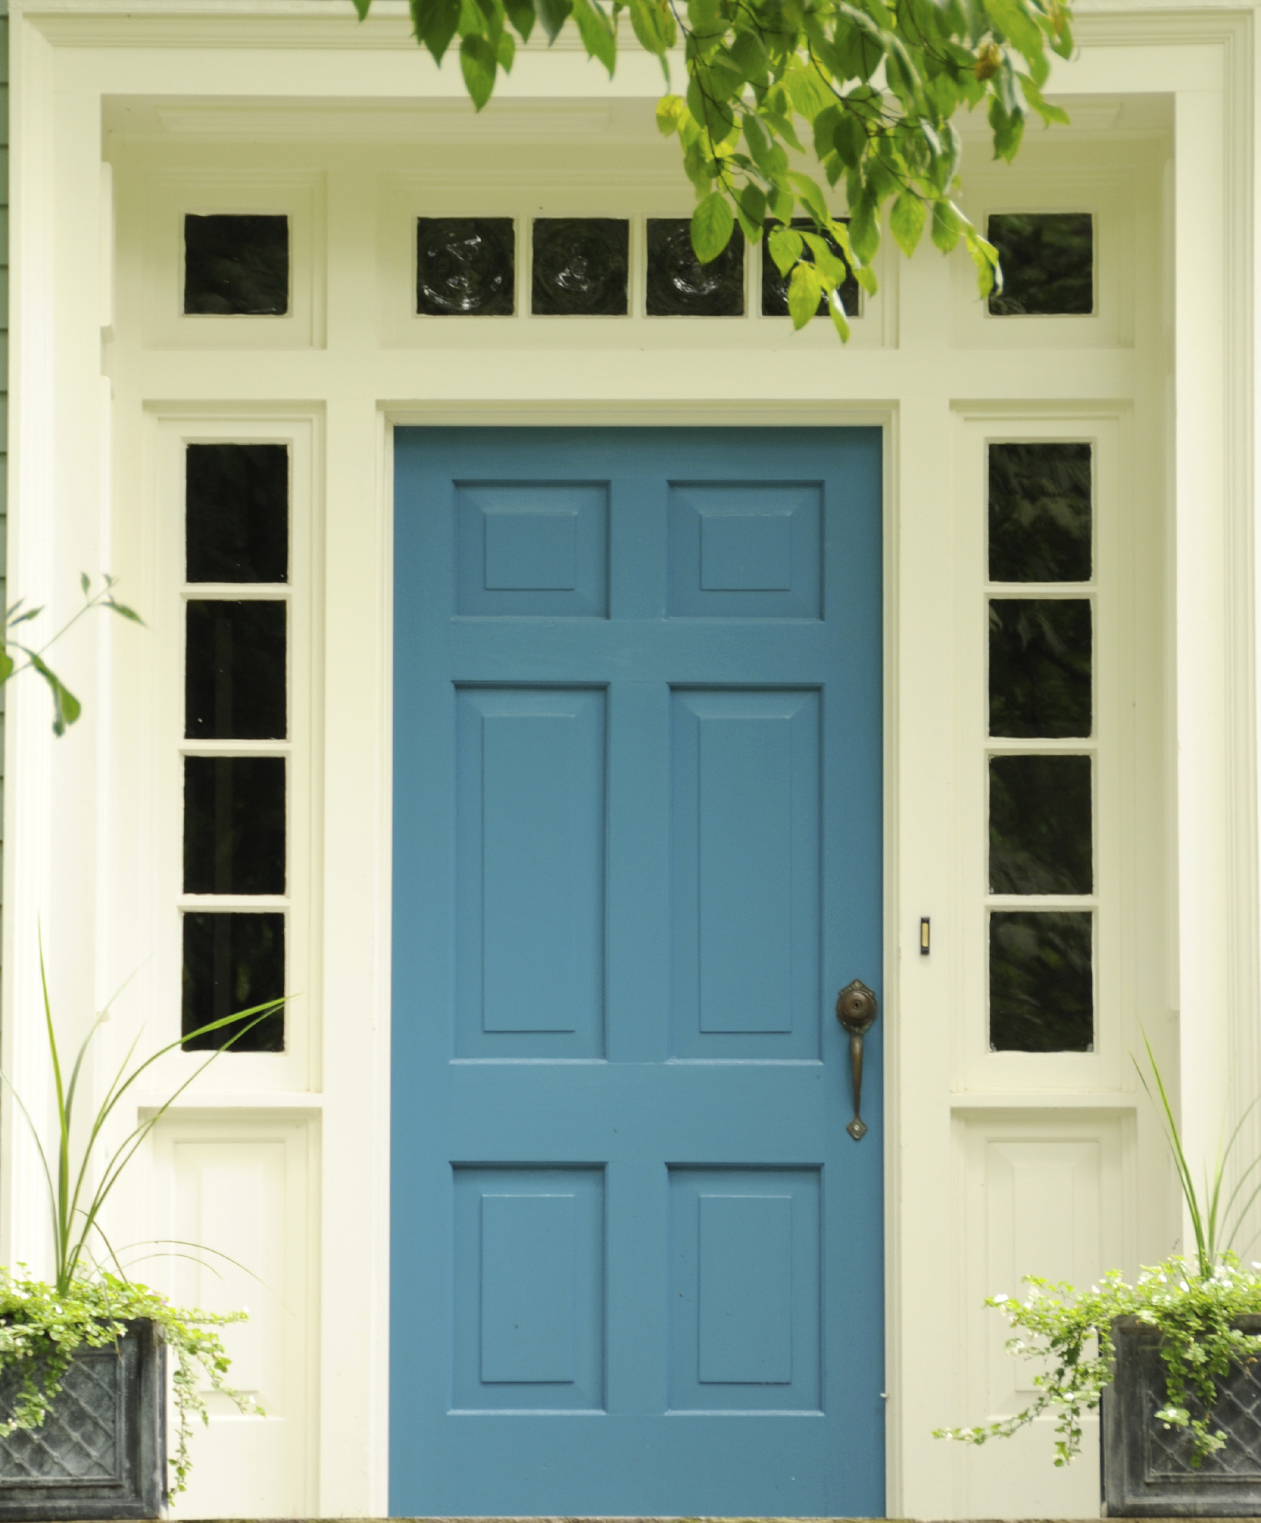 This blue front door has a brass key-entrance door knob and a brass handle. It also has a doorbell installed just beside the handle. The front door has a white painted casing with six glass panels above it. The door also has sidelight windows. Sitting in front of the main entrance are two black planters.